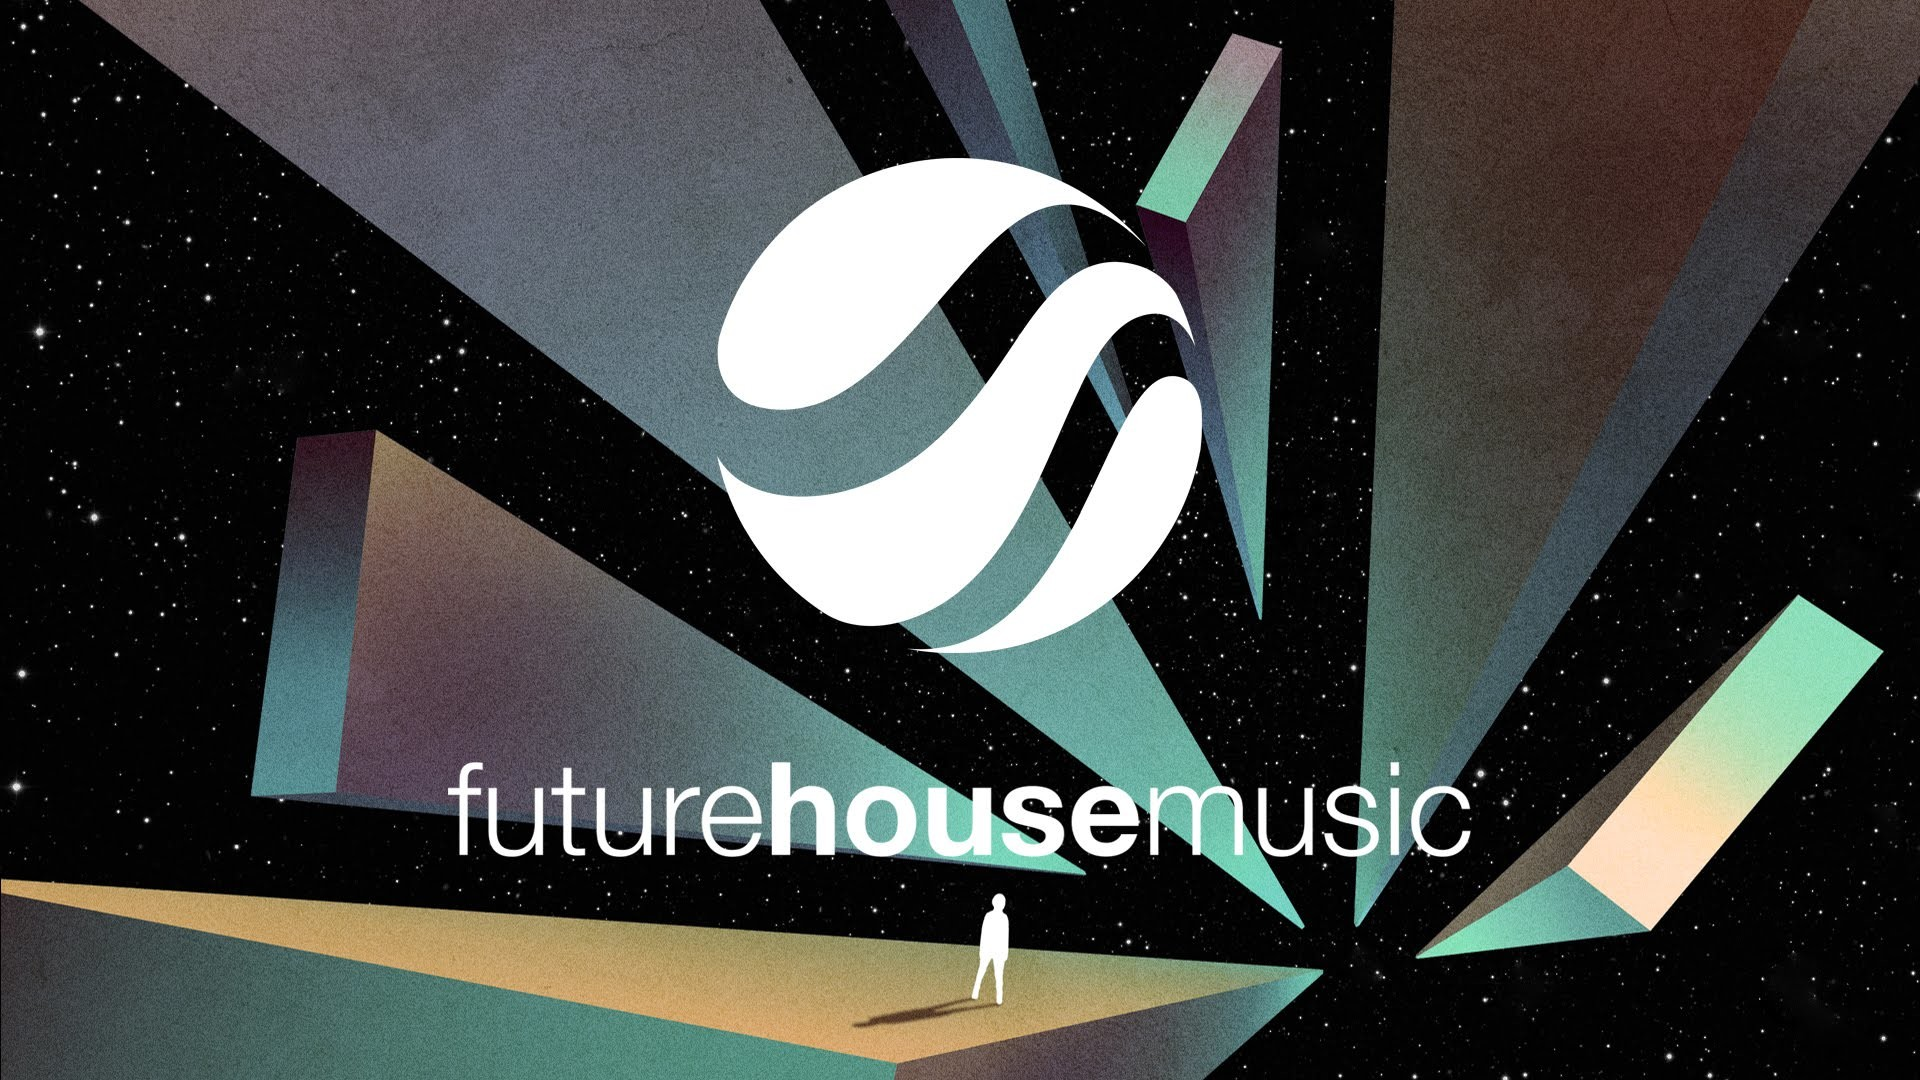 House music backgrounds 64 images for Groovy house music